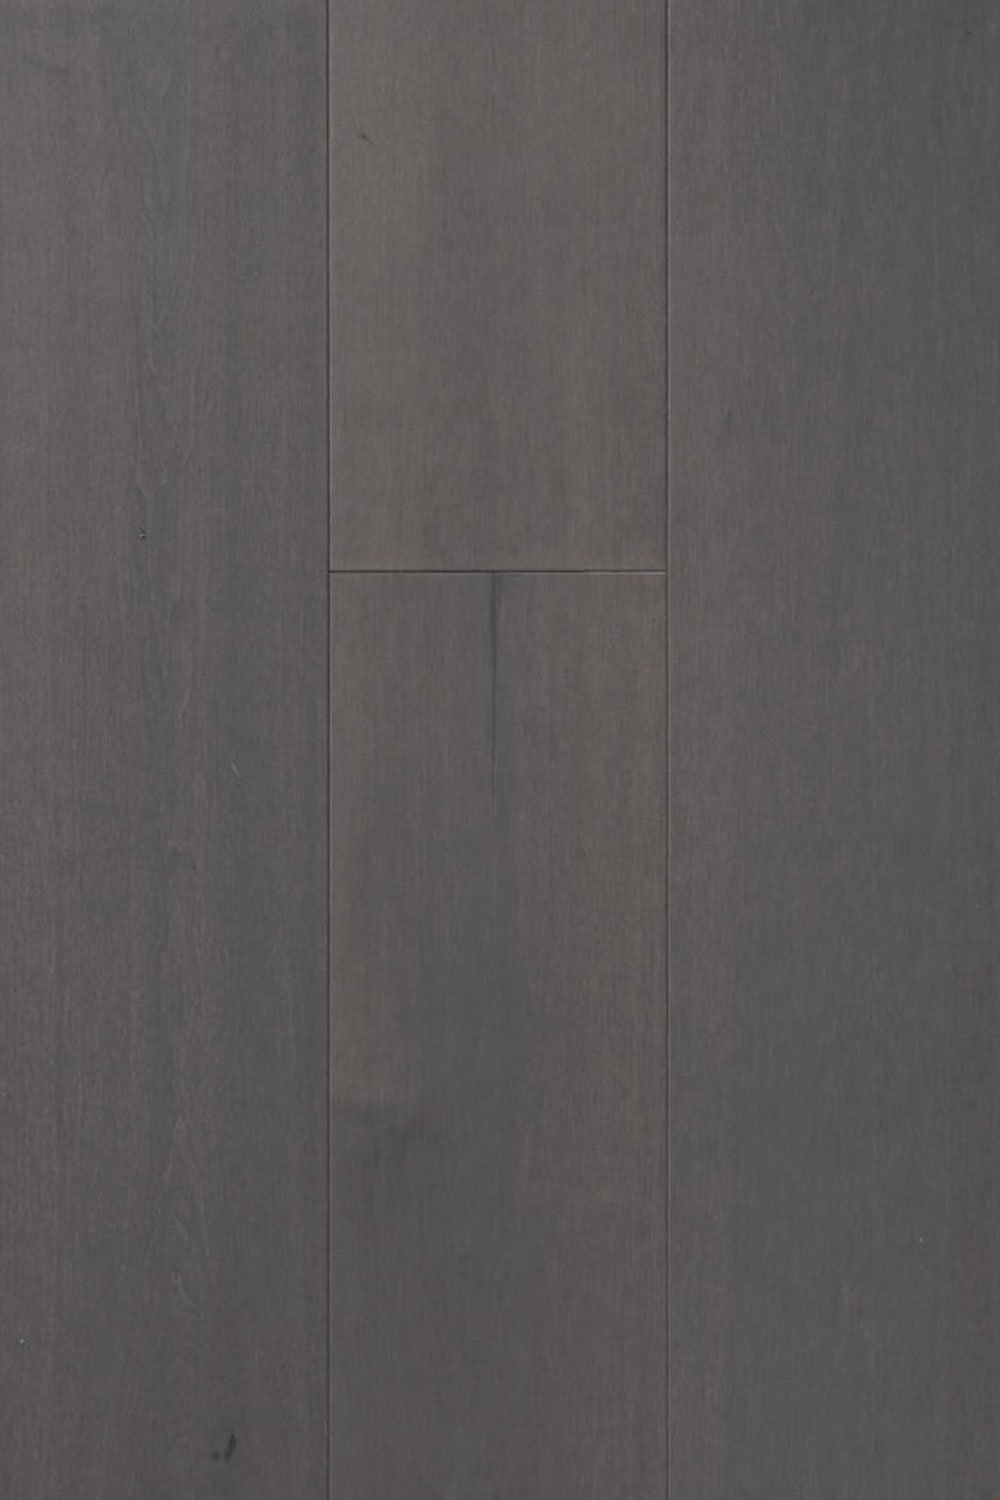 Satin UV Lacquer Balsamo 5/8 in. Thick x 6-1/2 in. Wide x Varying Length Floating Engineered Maple Hardwood Flooring (19.18 sq. ft. / box) - 810001960032